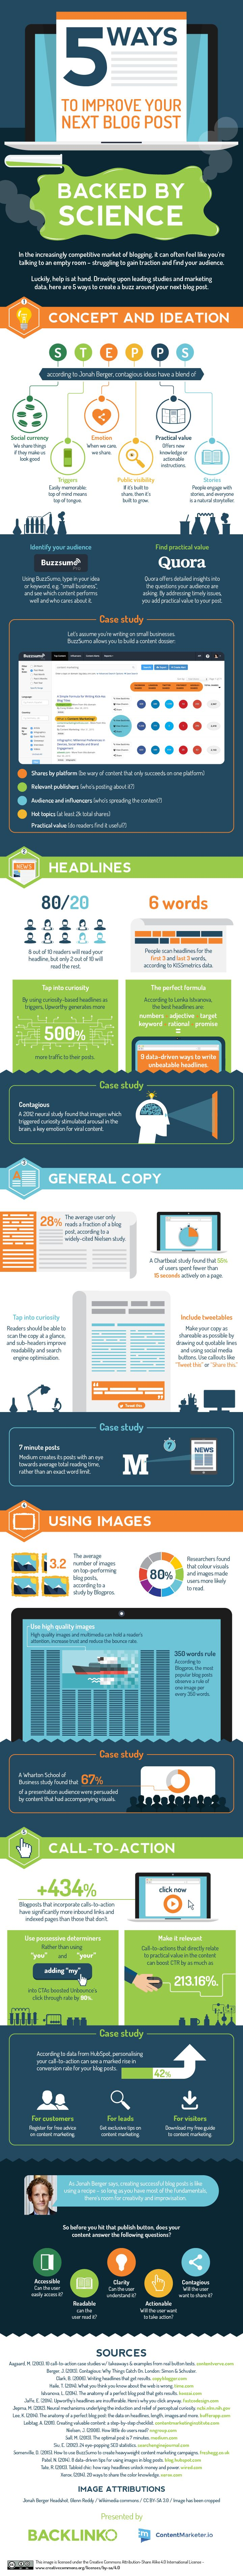 #Blogging Tips: 5 Ways To Improve Your Next Blog Post (Backed By Science) - #infographic